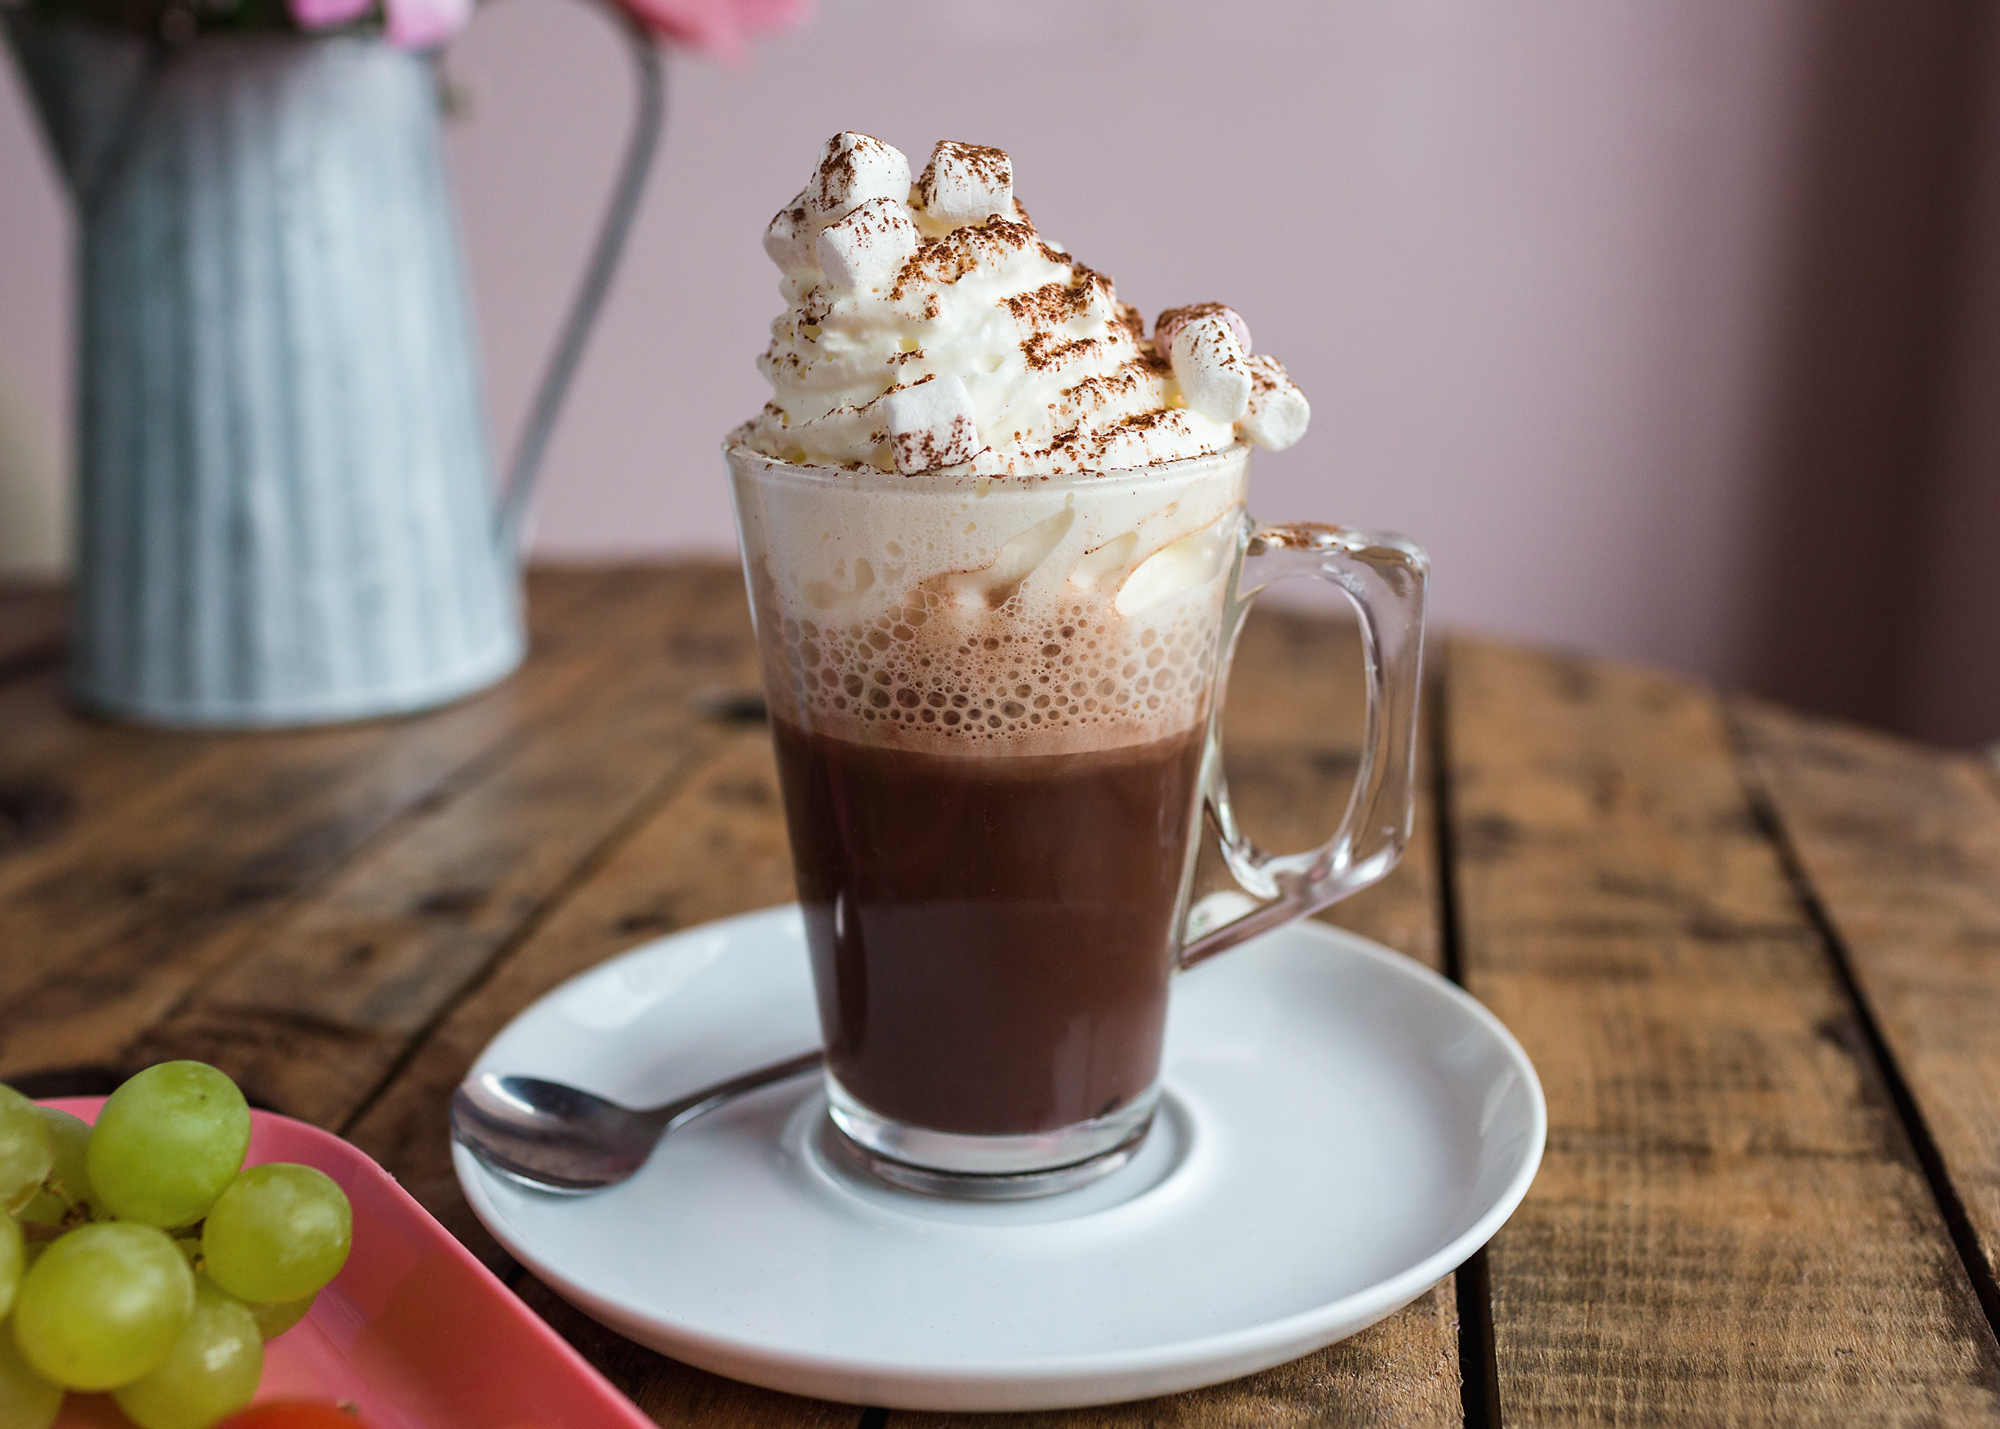 Hot chocolate at Miss B's cafe, Bedwas